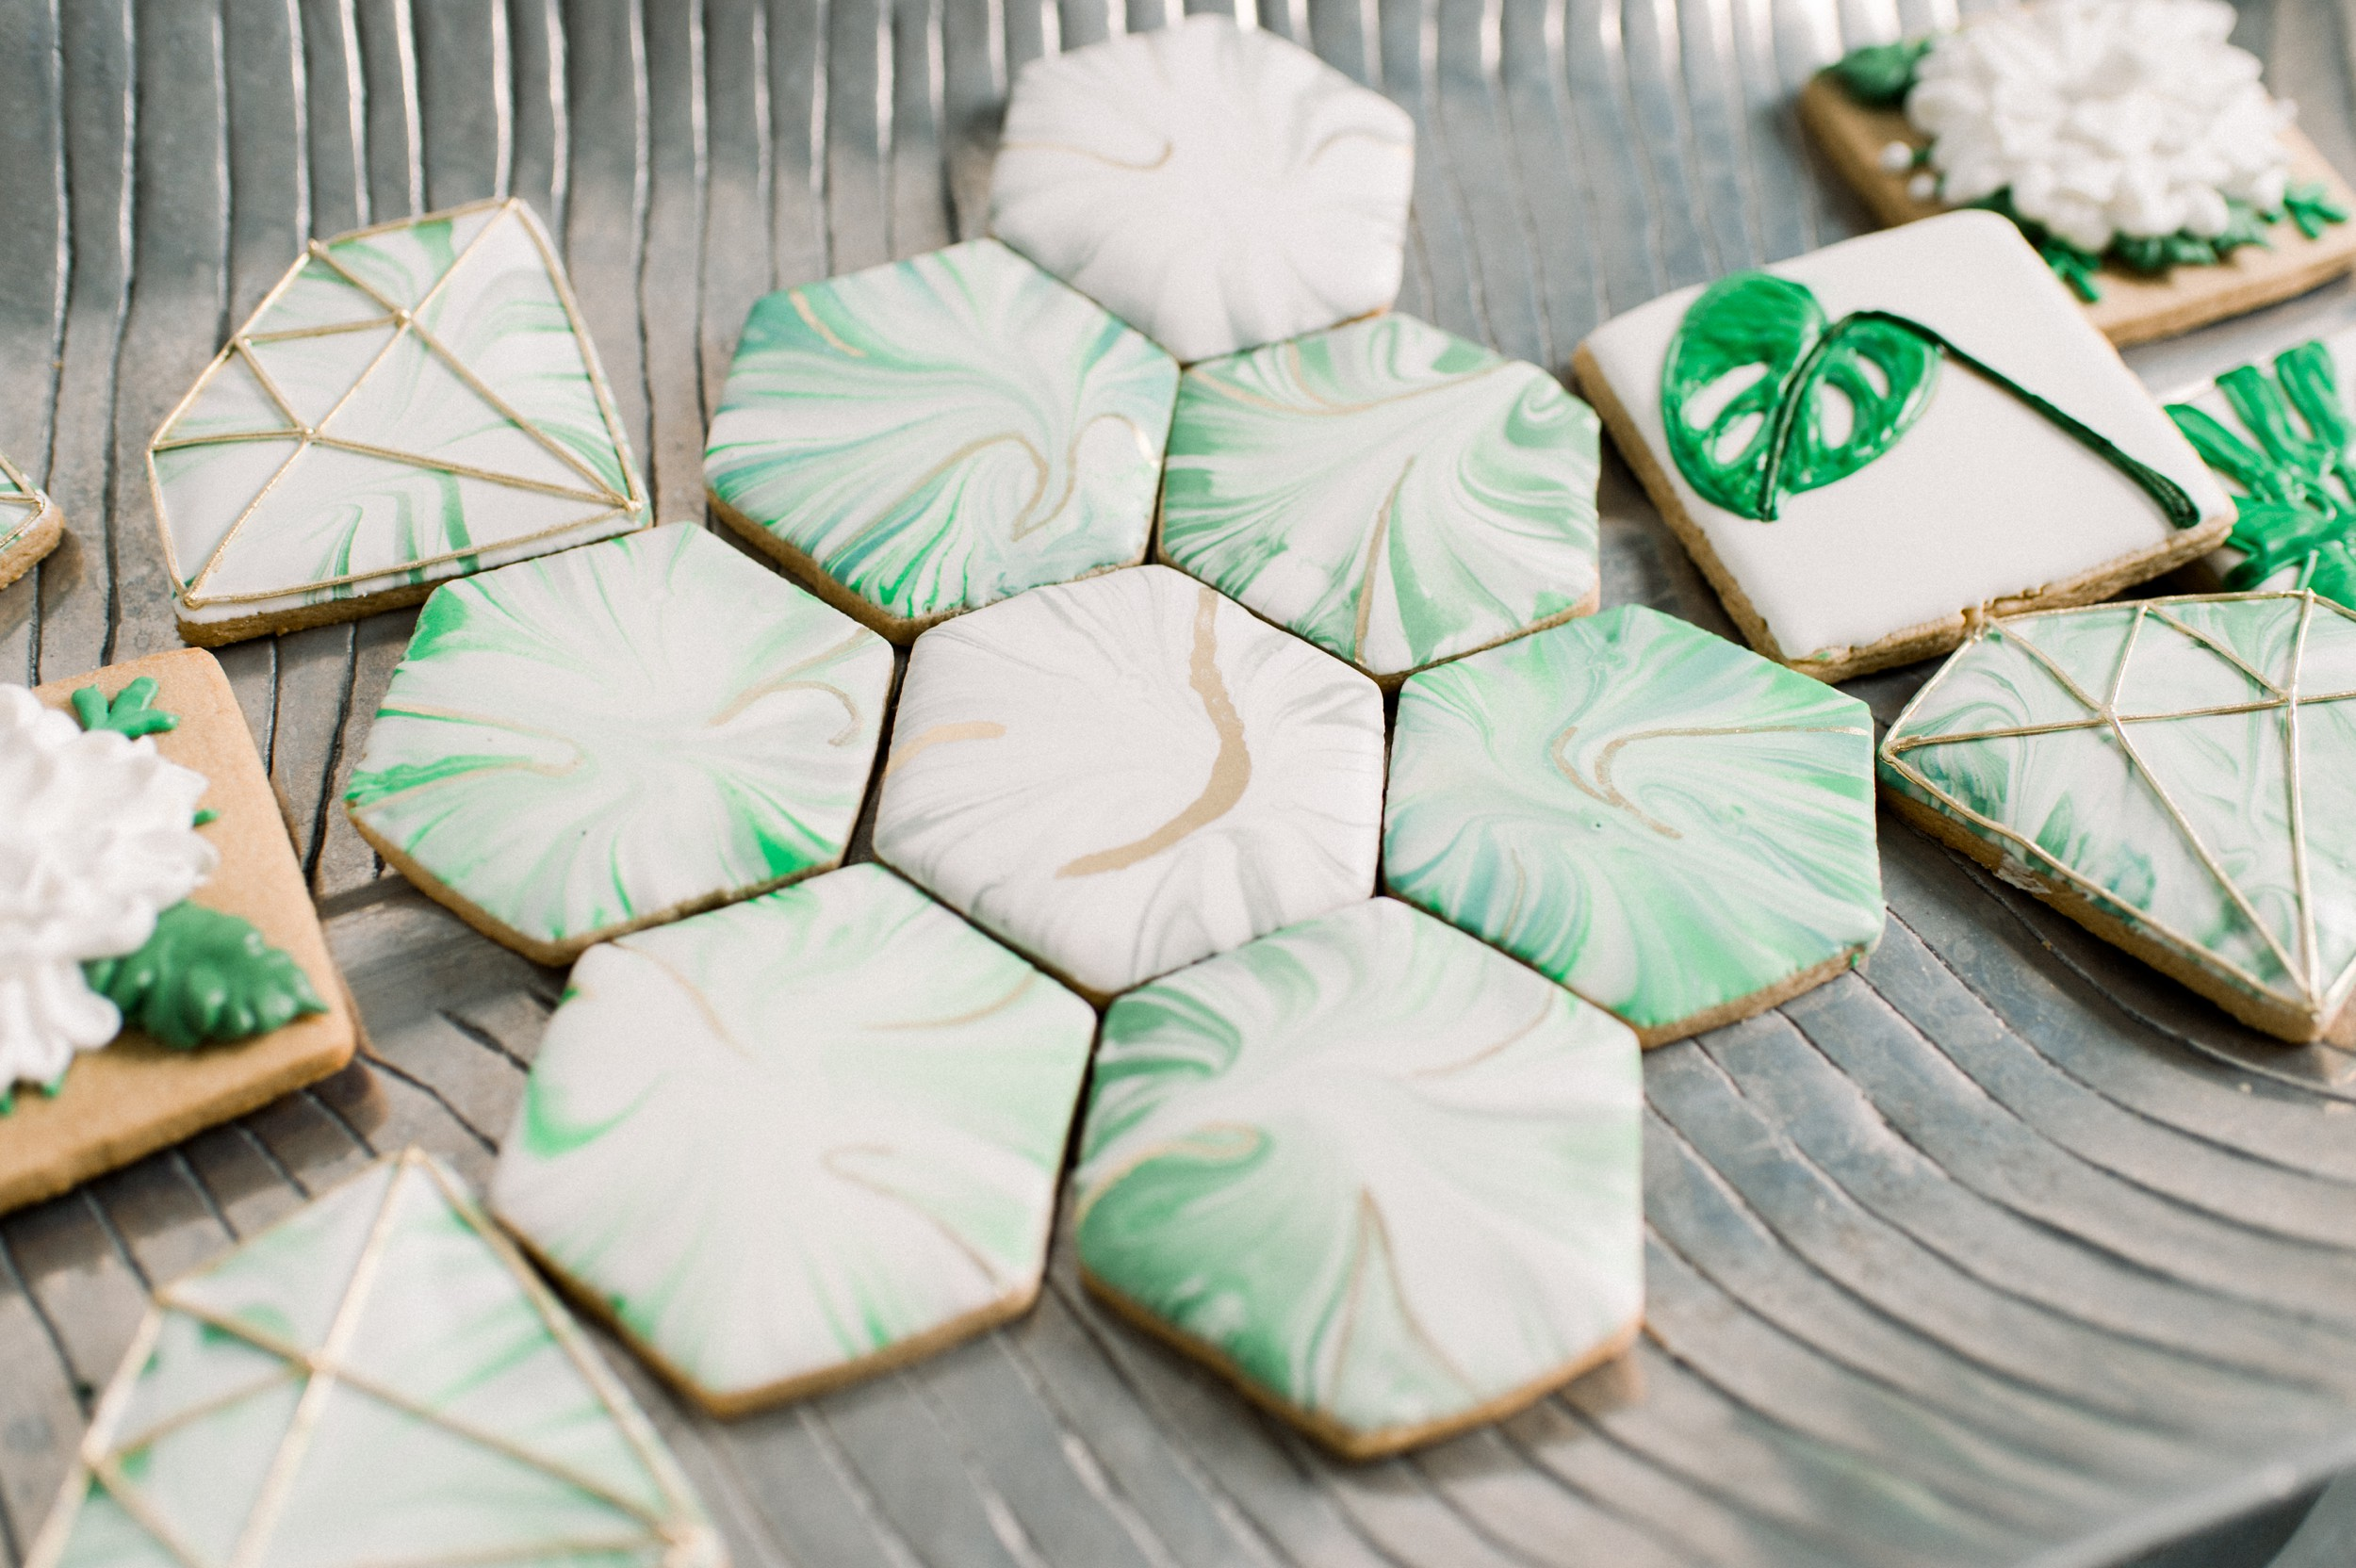 marble and botanical sugar cookies by dolce vida baking company at artists for humanity epicenter boston wedding venue inspiration